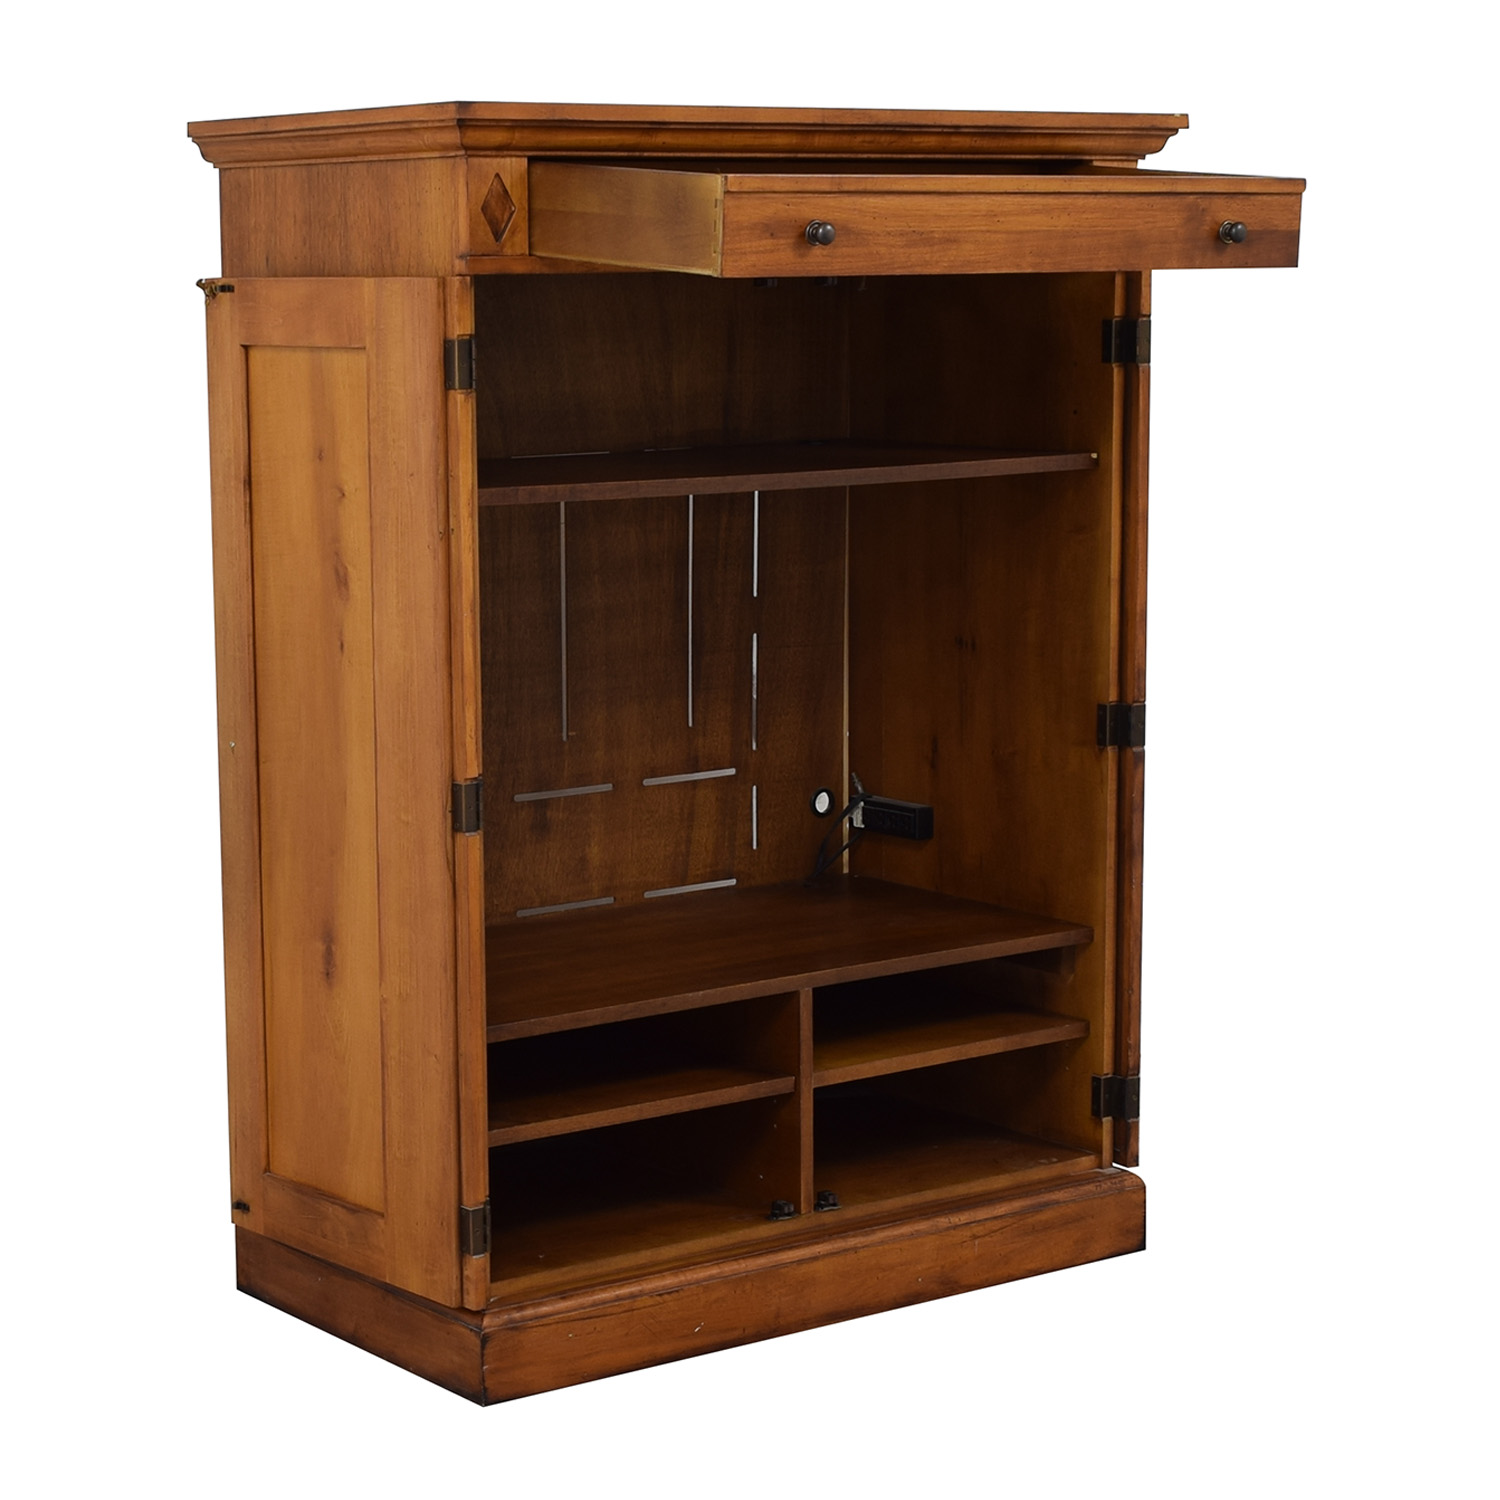 Romweber Romweber Wooden Entertainment Center for sale